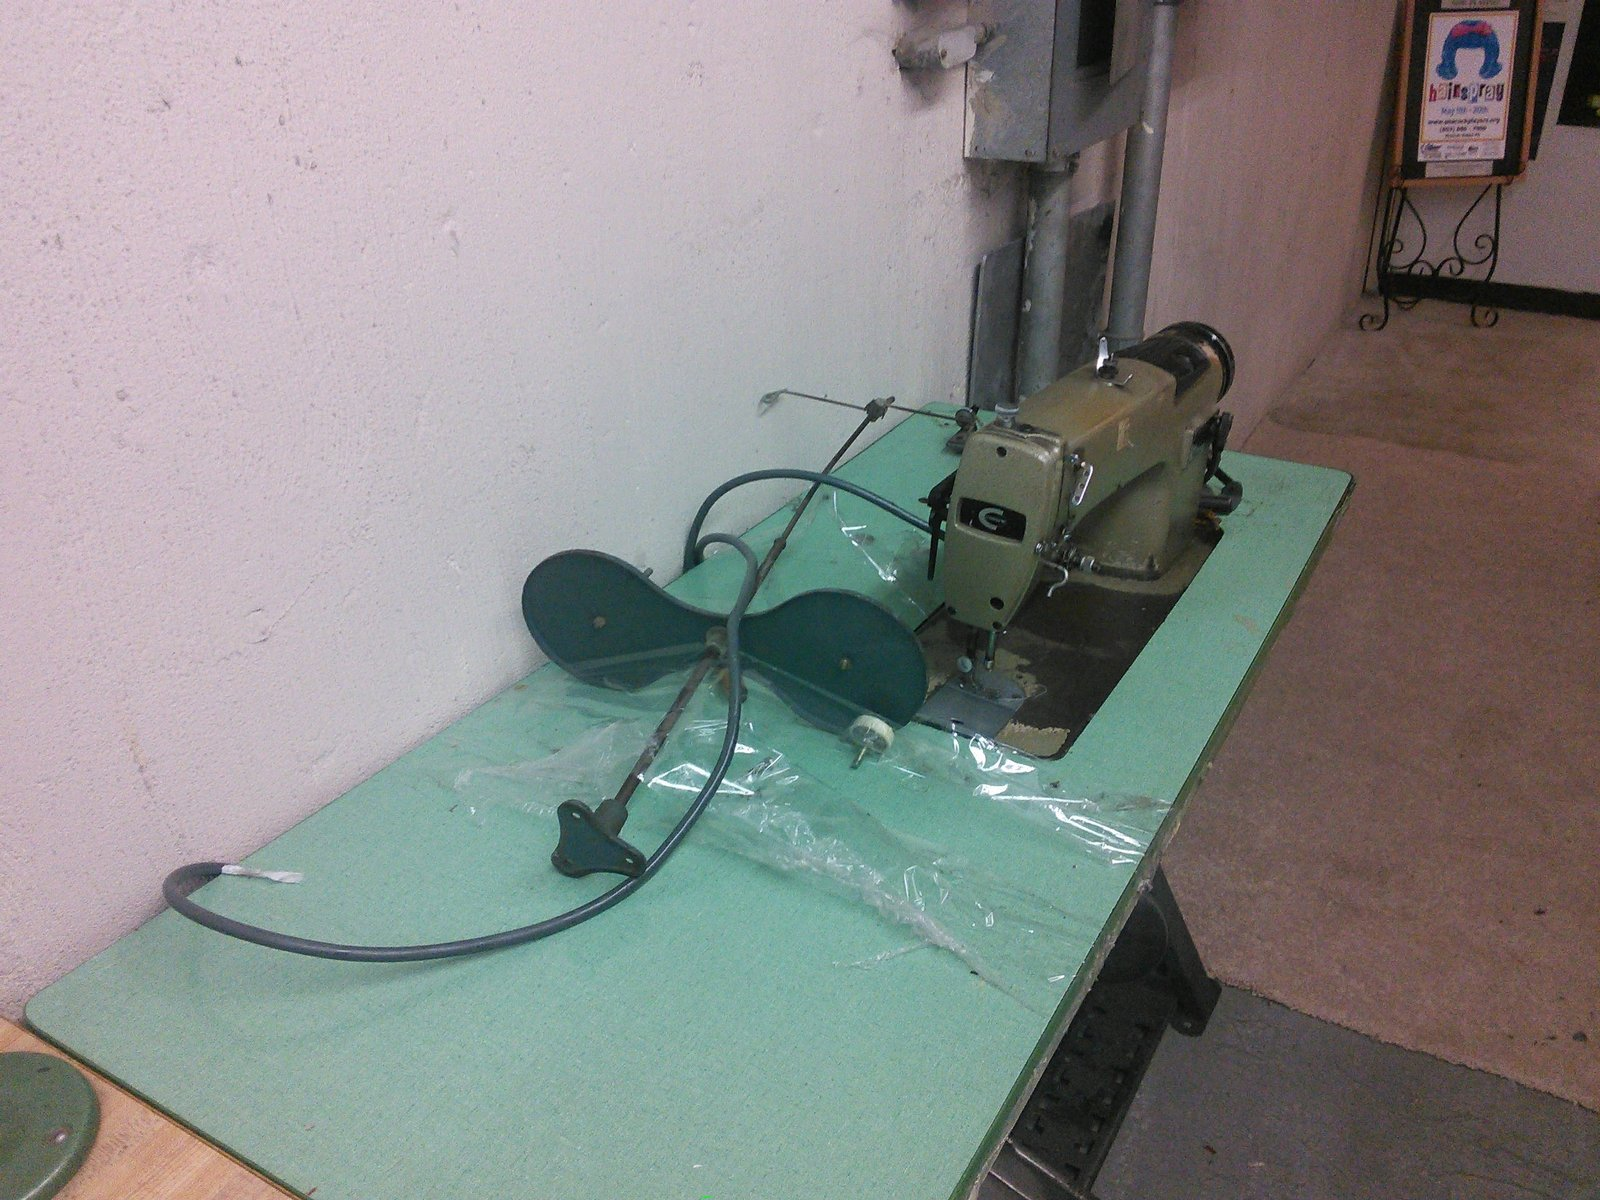 Consew Model 230 Industrial Sewing Machine - $799.00